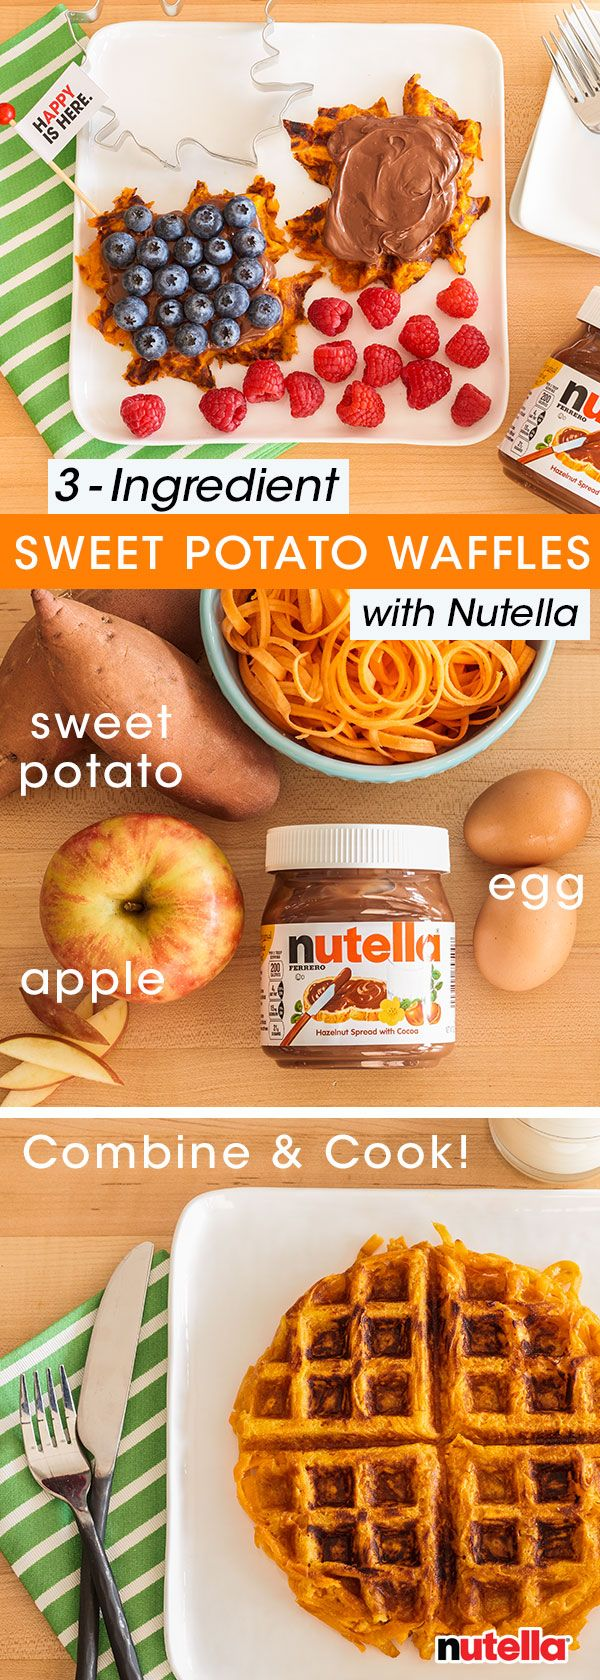 Hand out happy this morning by whipping up these simple sweet potato waffles. Begin by spiralizing one sweet potato and cooking on a stovetop for eight minutes, or until softened. Next, mix together one apple that has been shredded with one egg. Combine all ingredients and place in a waffle iron. Top this unbe-leaf-ably festive breakfast with a spread of Nutella® and serve!